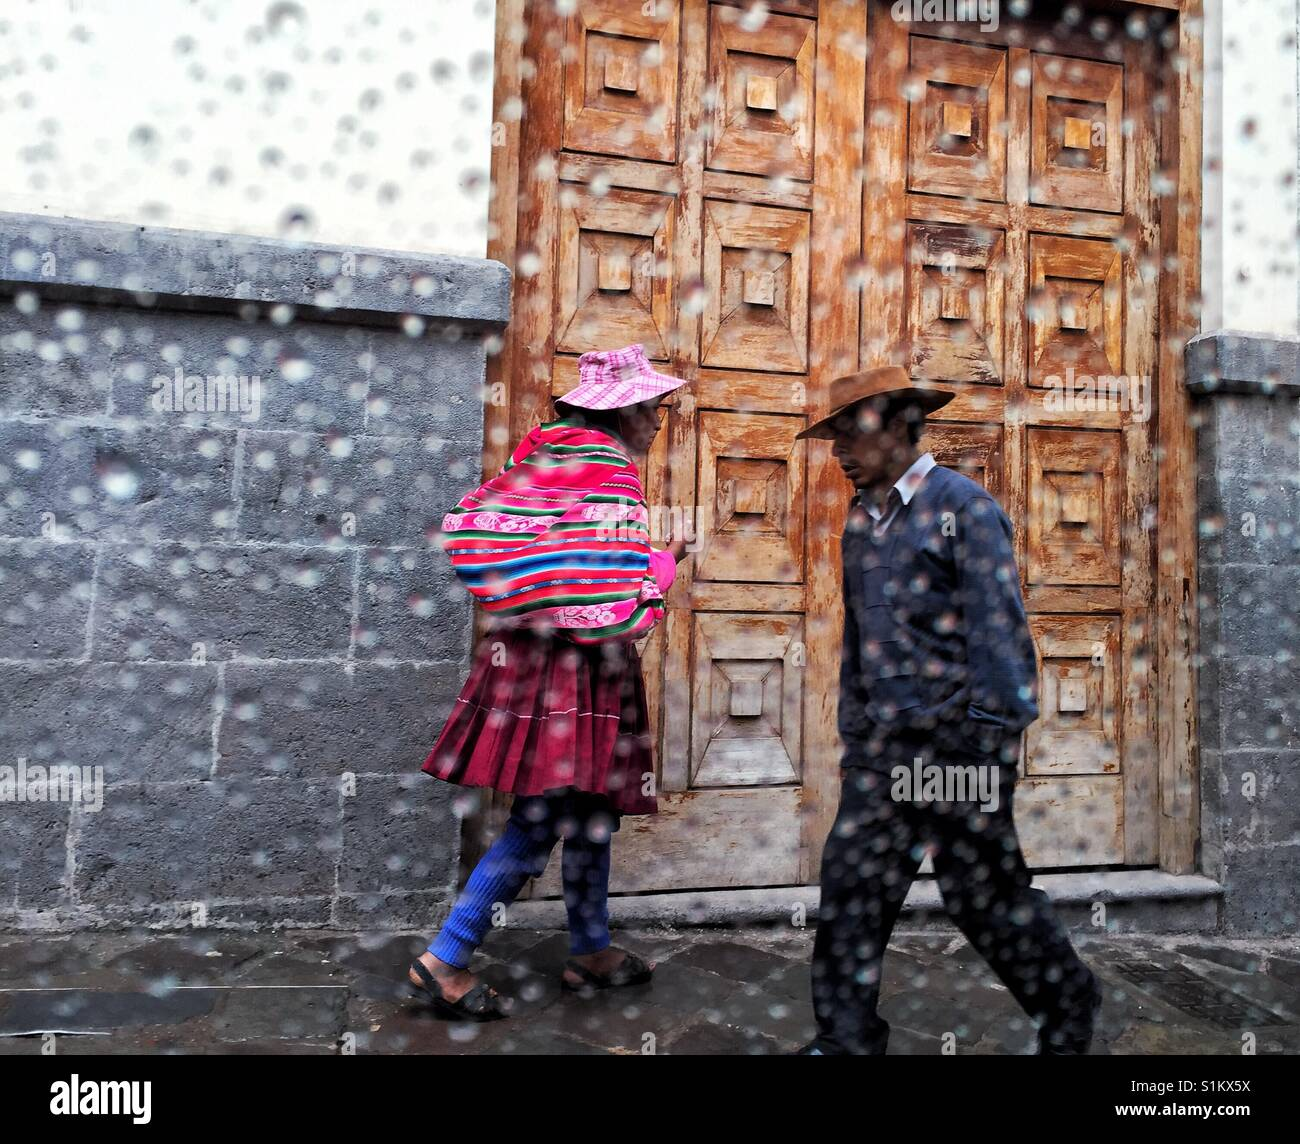 Rainy day on the streets of Cusco in Peru - Stock Image